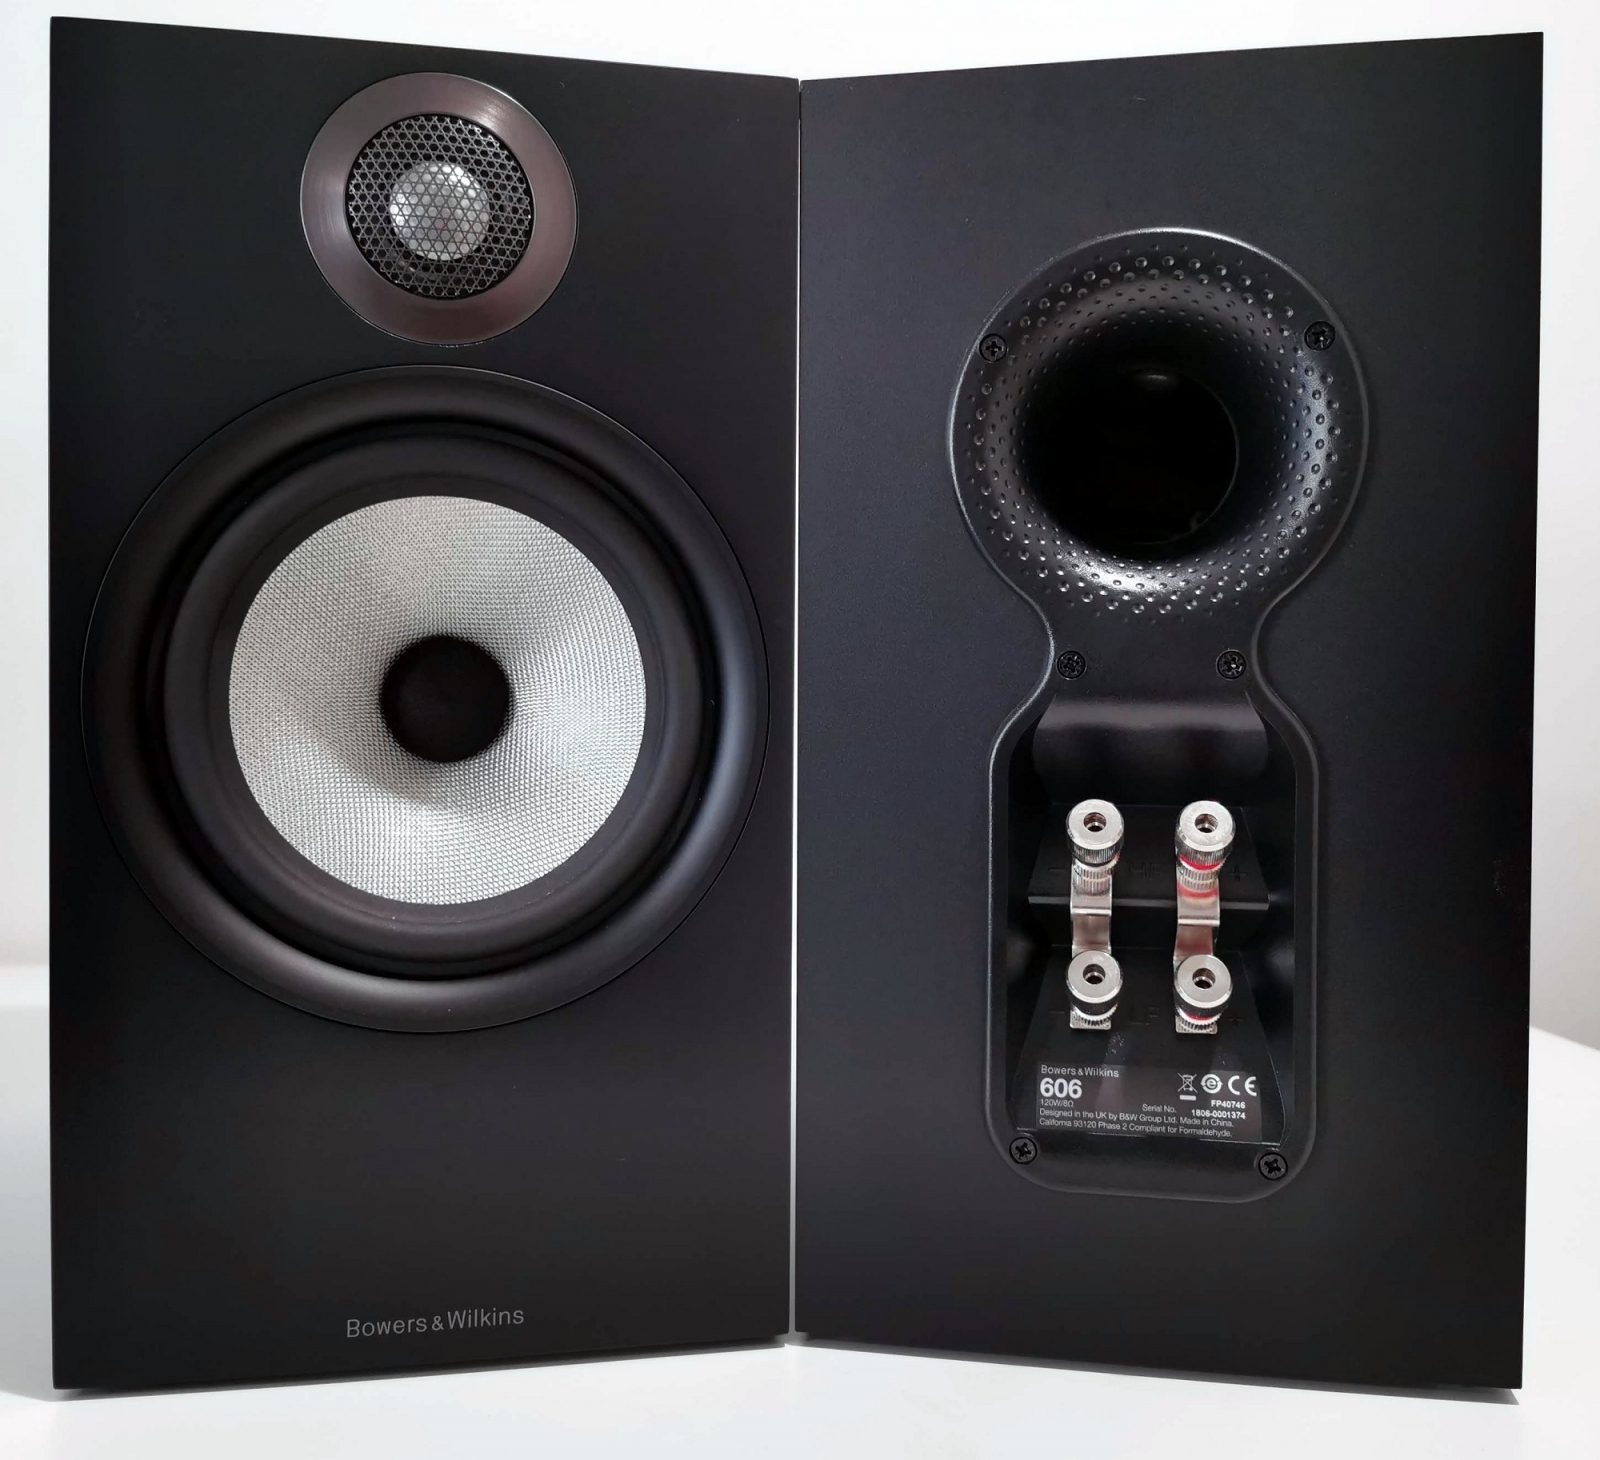 Bowers Wilkins 606 review